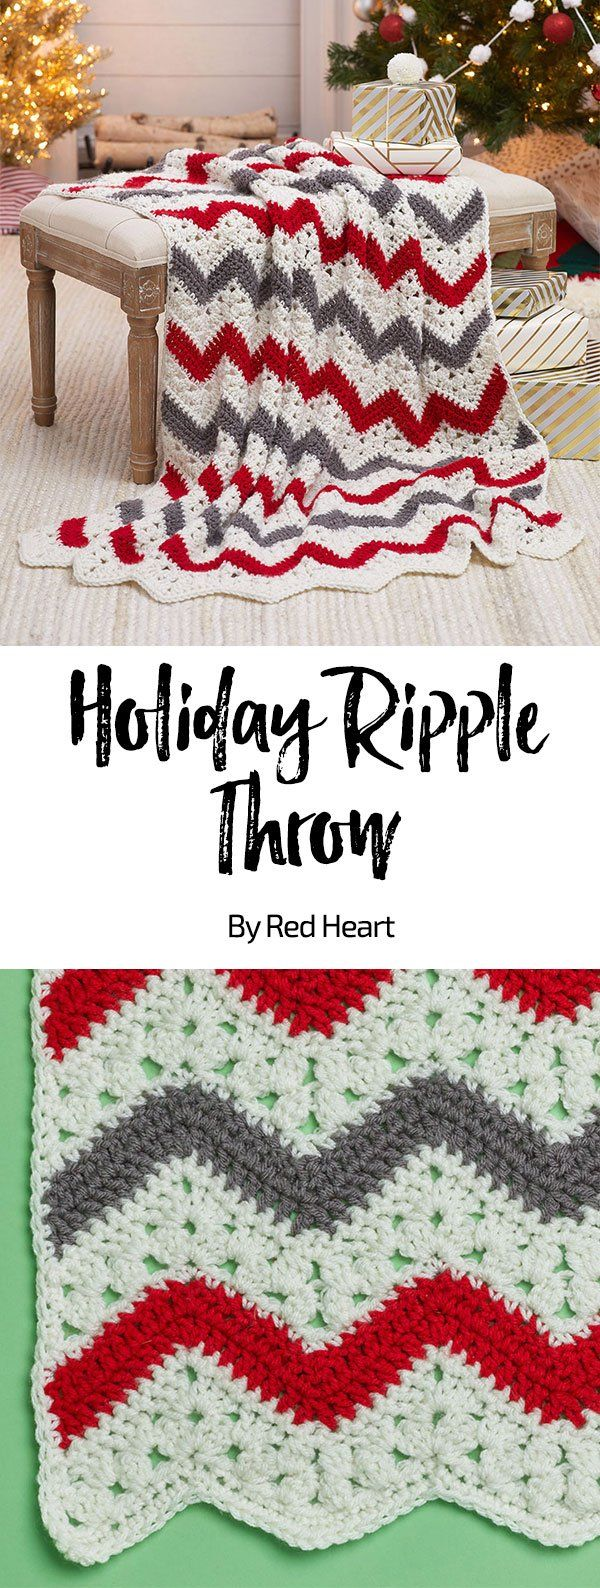 Holiday Ripple Throw free crochet pattern in With Love ...